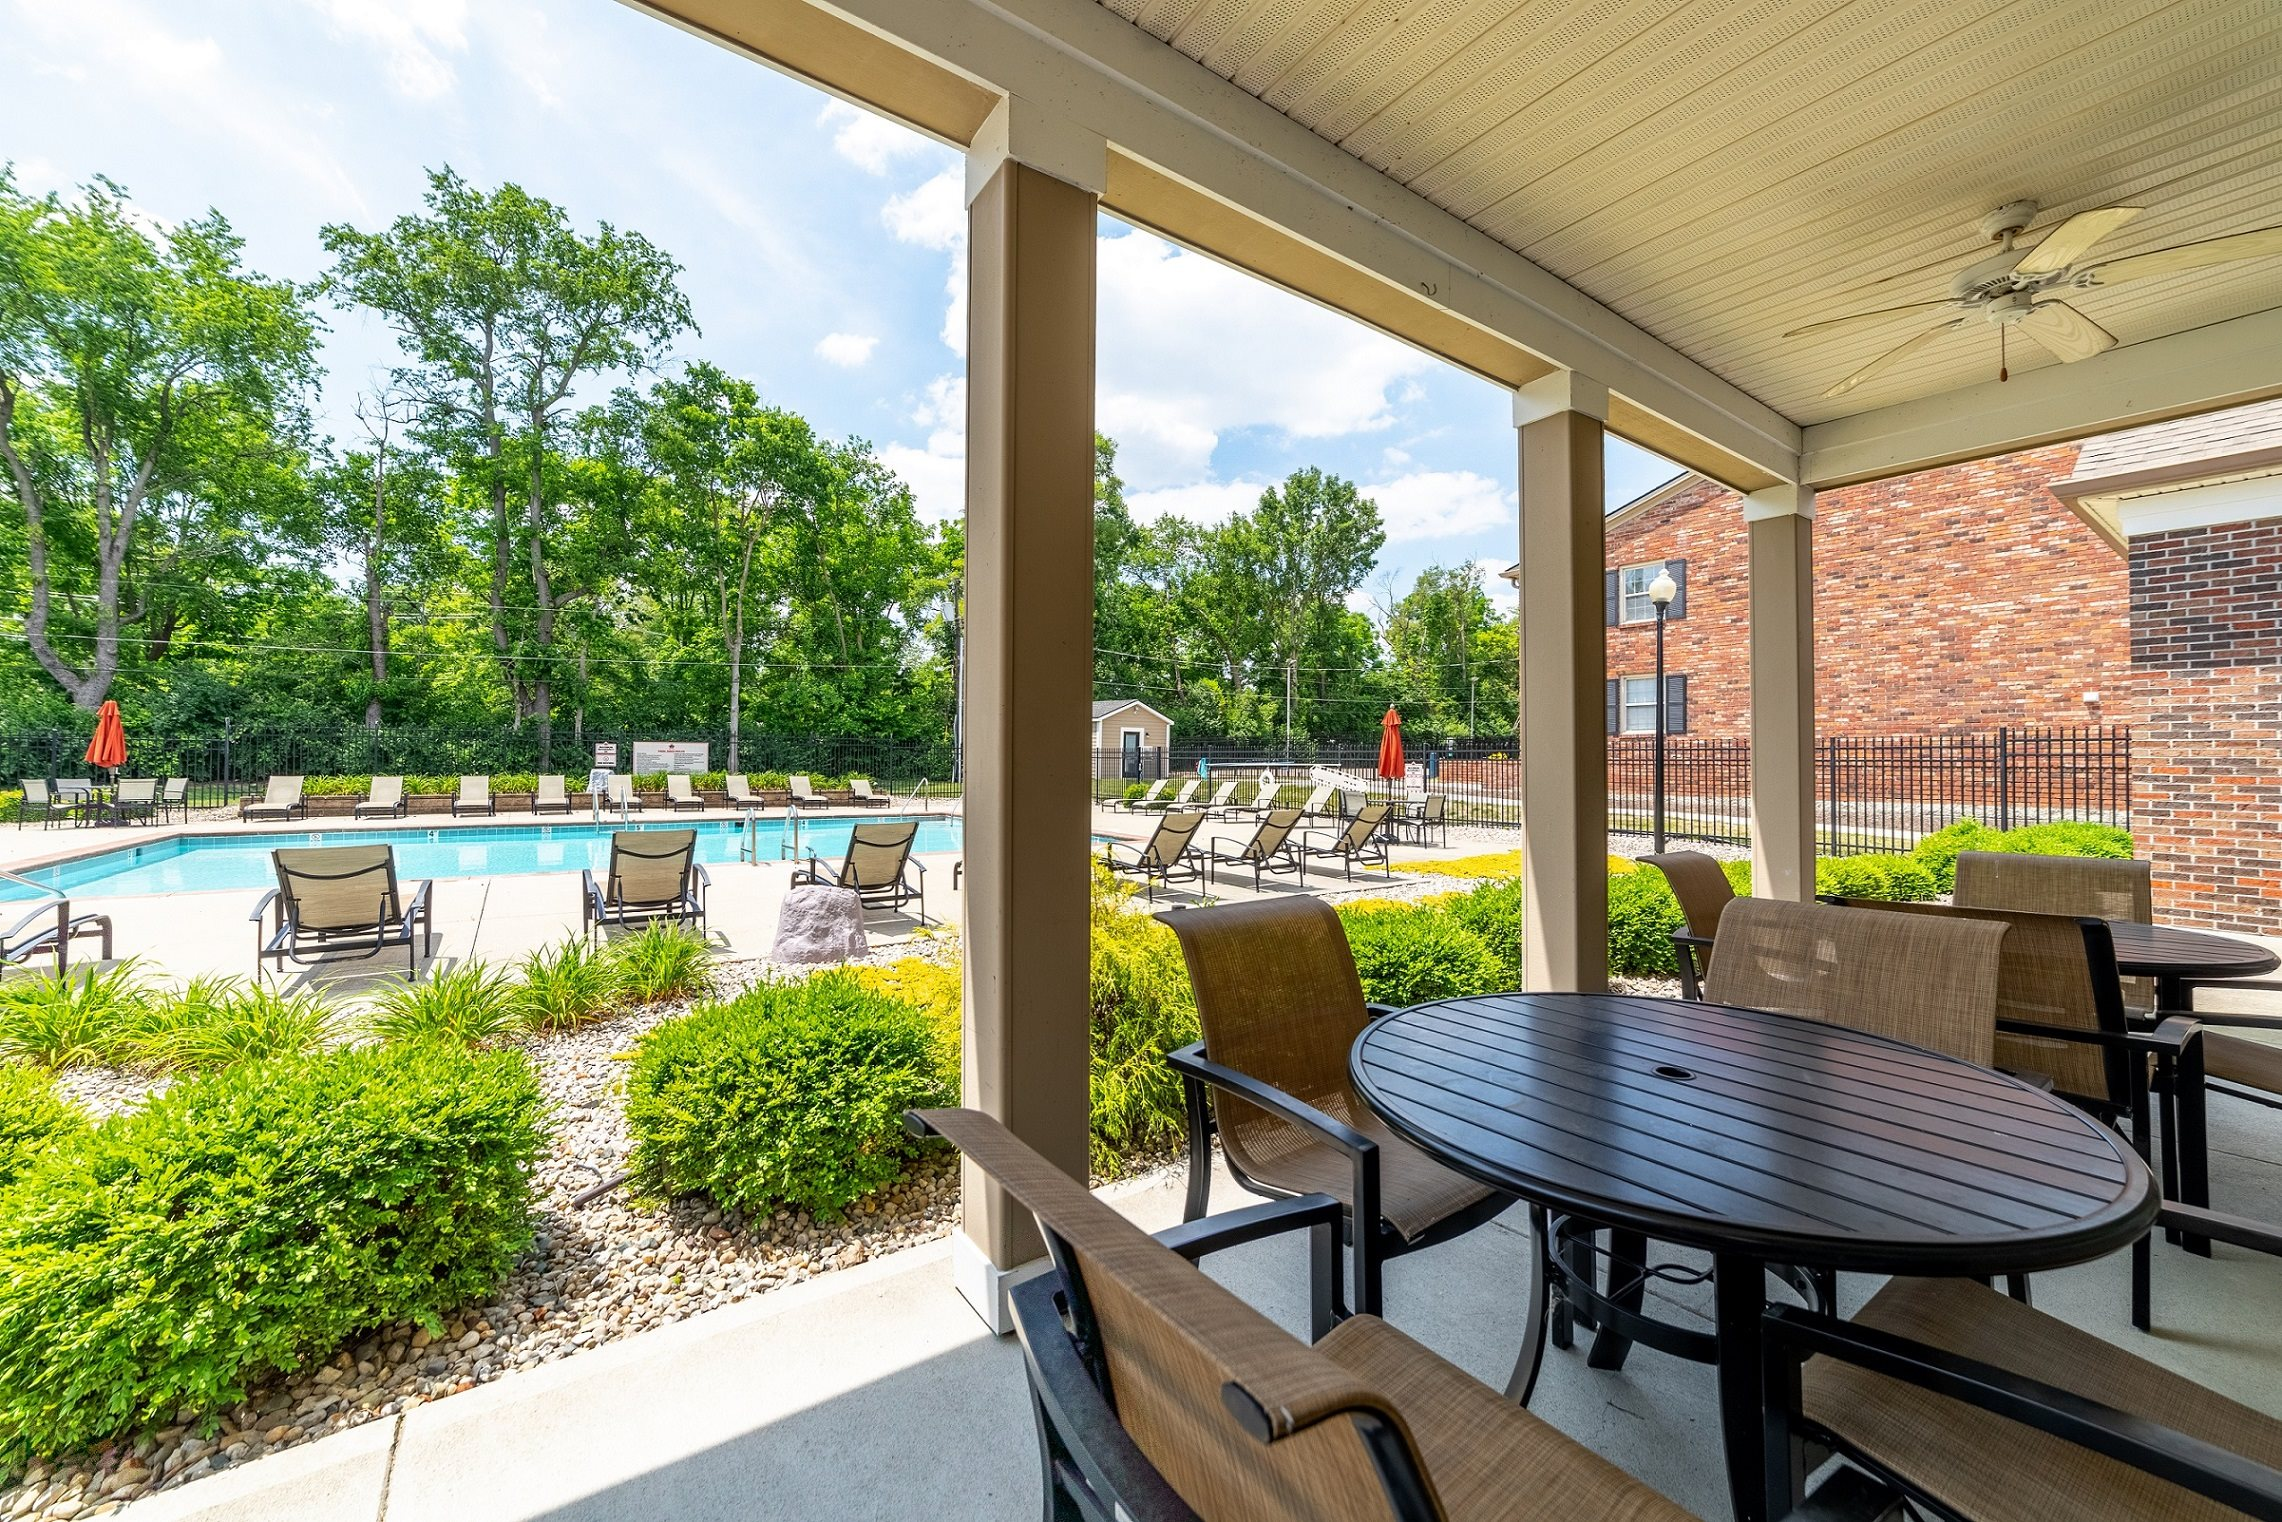 Shaded Lounge Area By Pool at Buckingham Monon Living, Indianapolis, 46220